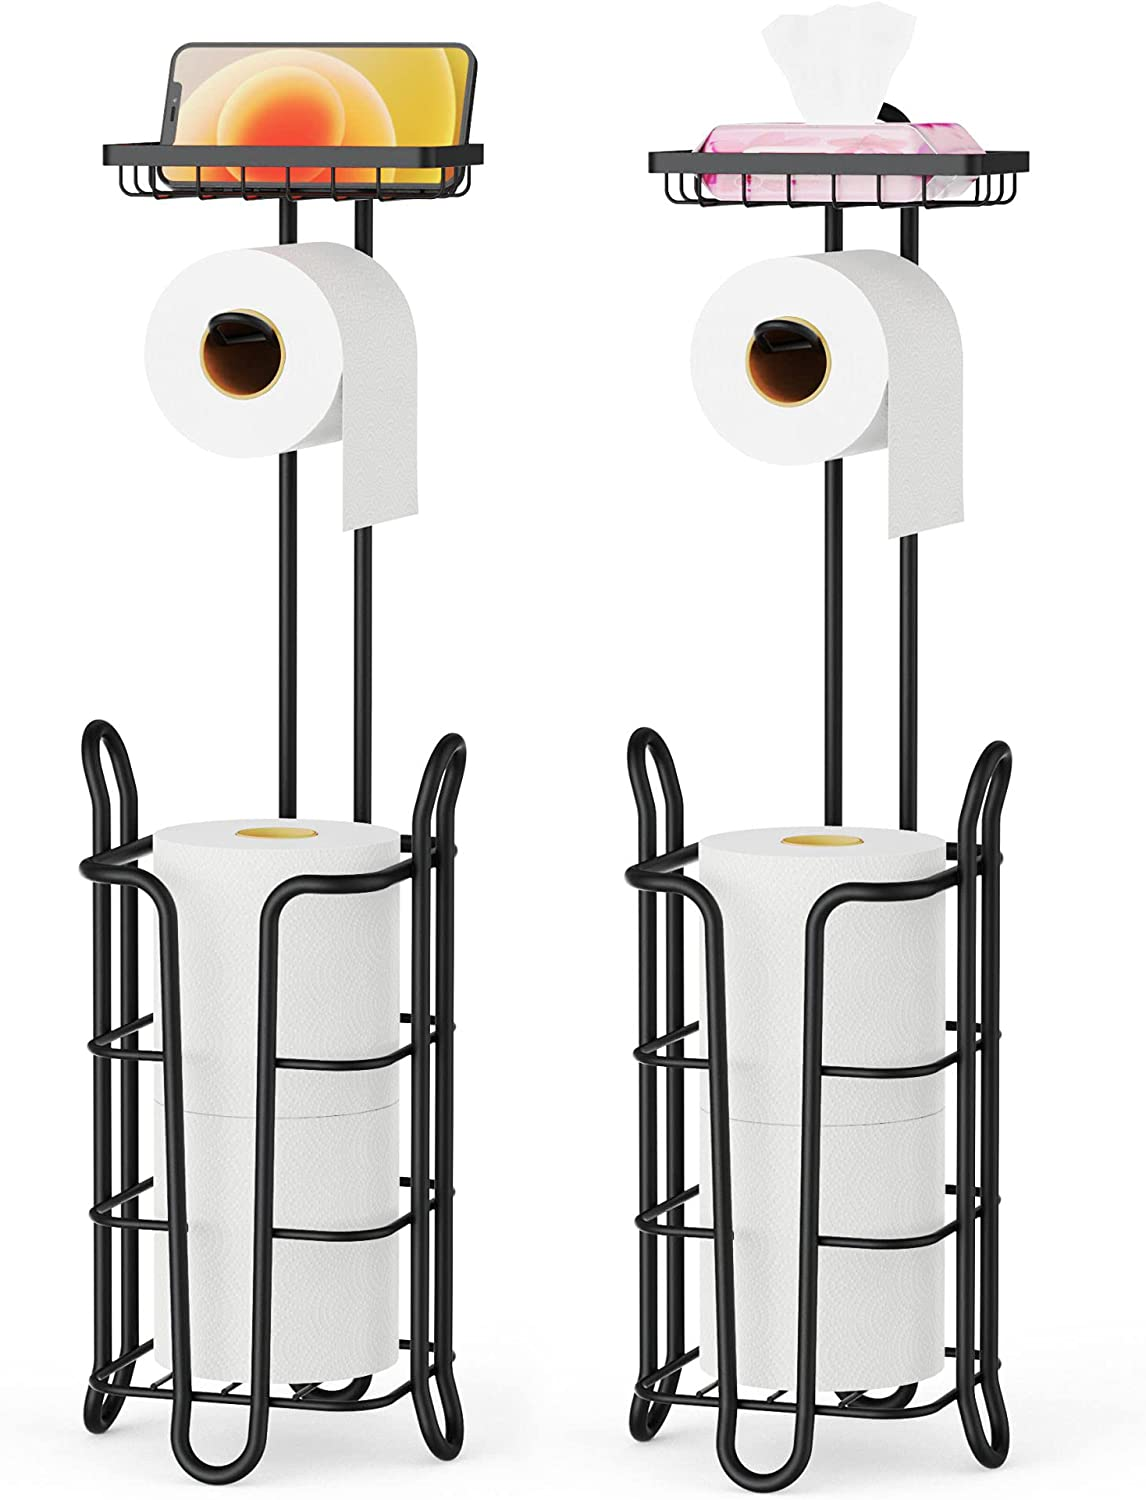 Toilet Memphis Mall Paper Holder Mail order cheap Stand Tidyway 2 Pack Standing Free Metal To